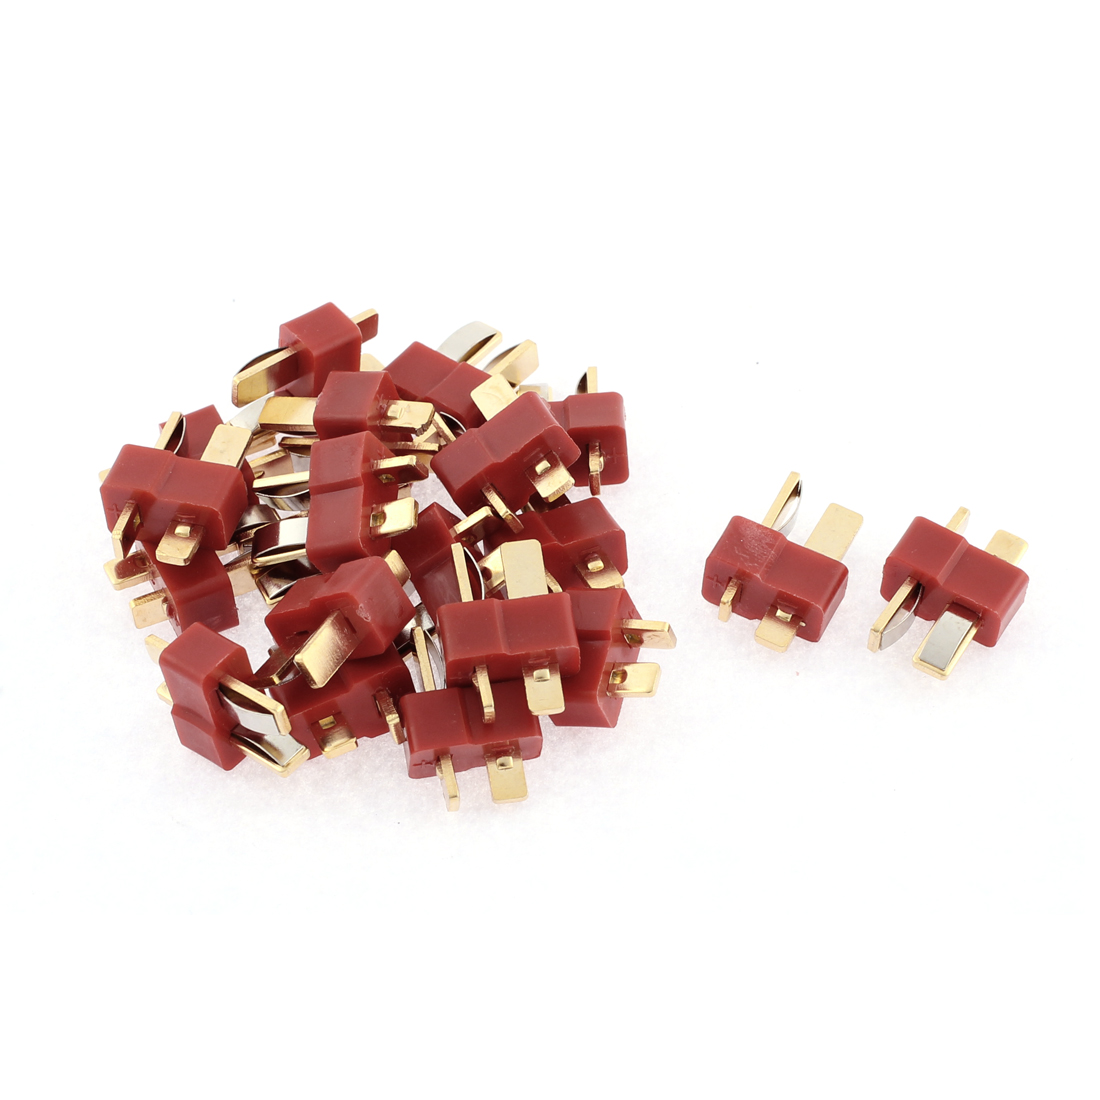 20 Pcs T Male Connectors for RC Airplane Aircraft LiPo Battery ESC